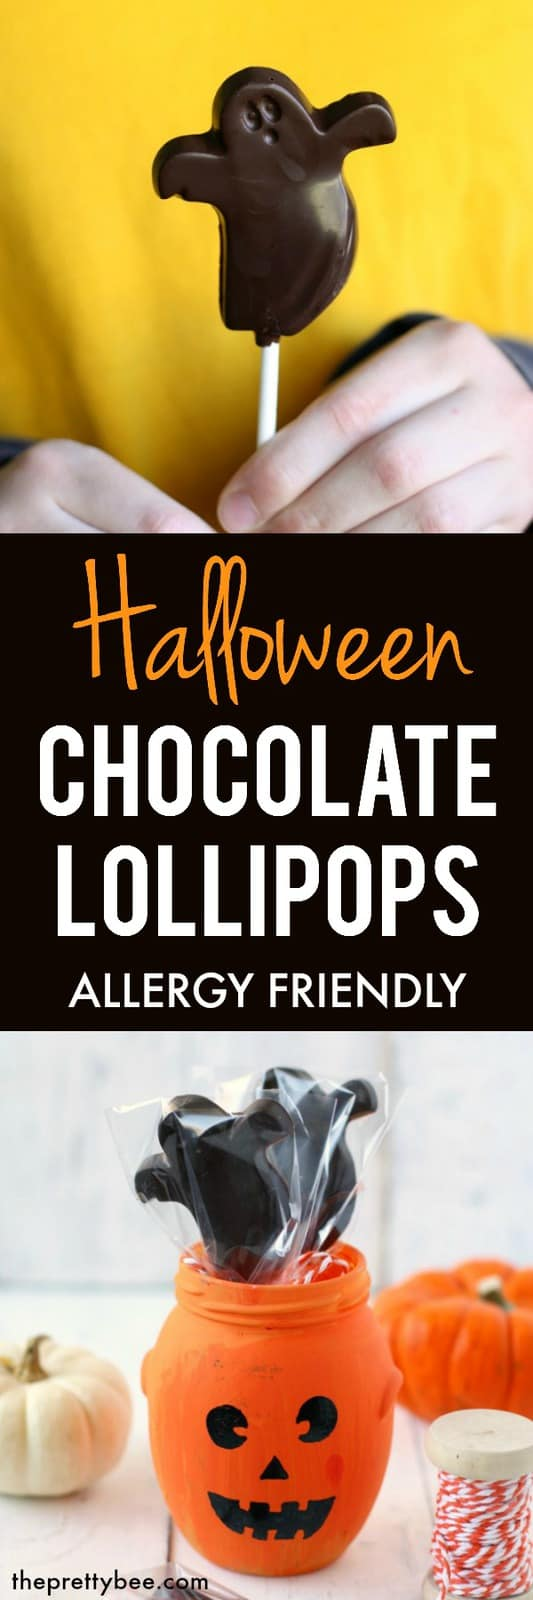 These Halloween chocolate lollipops are so easy to make, and are allergy friendly, too! #halloween #vegan #dairyfree #glutenfree #nutfree